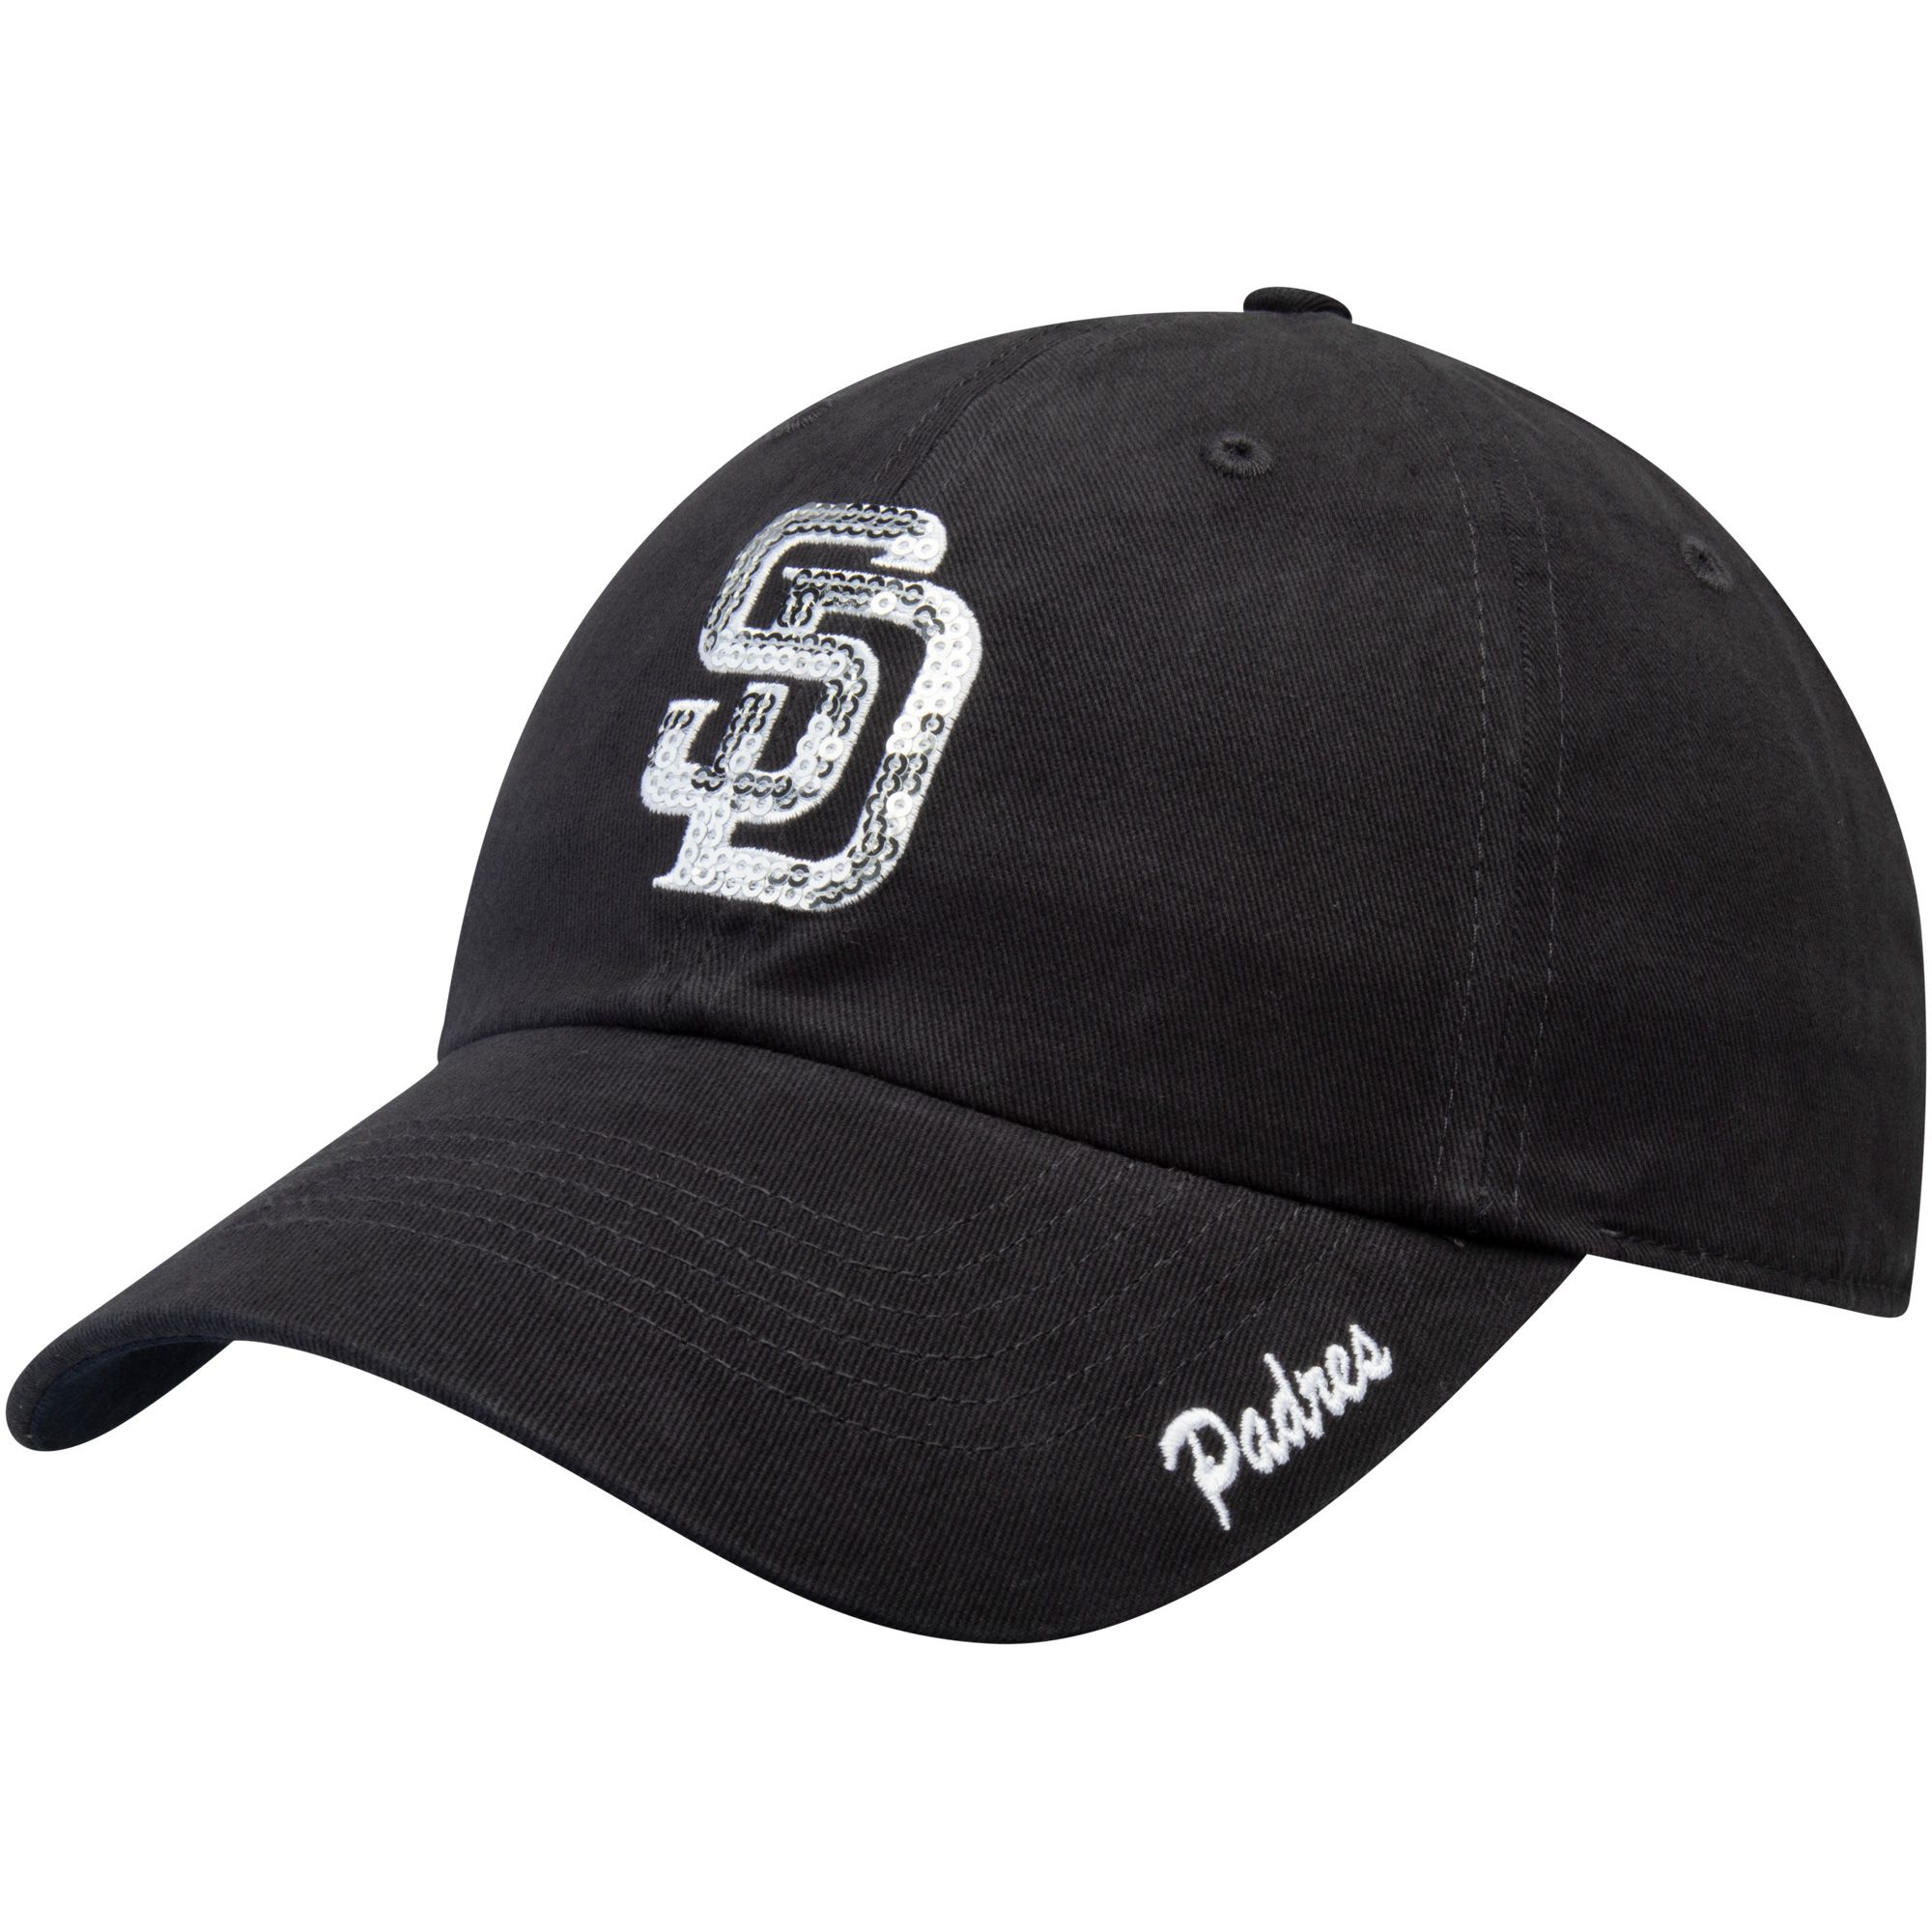 Women's Fan Favorite Navy San Diego Padres Sparkle Adjustable Hat - OSFA